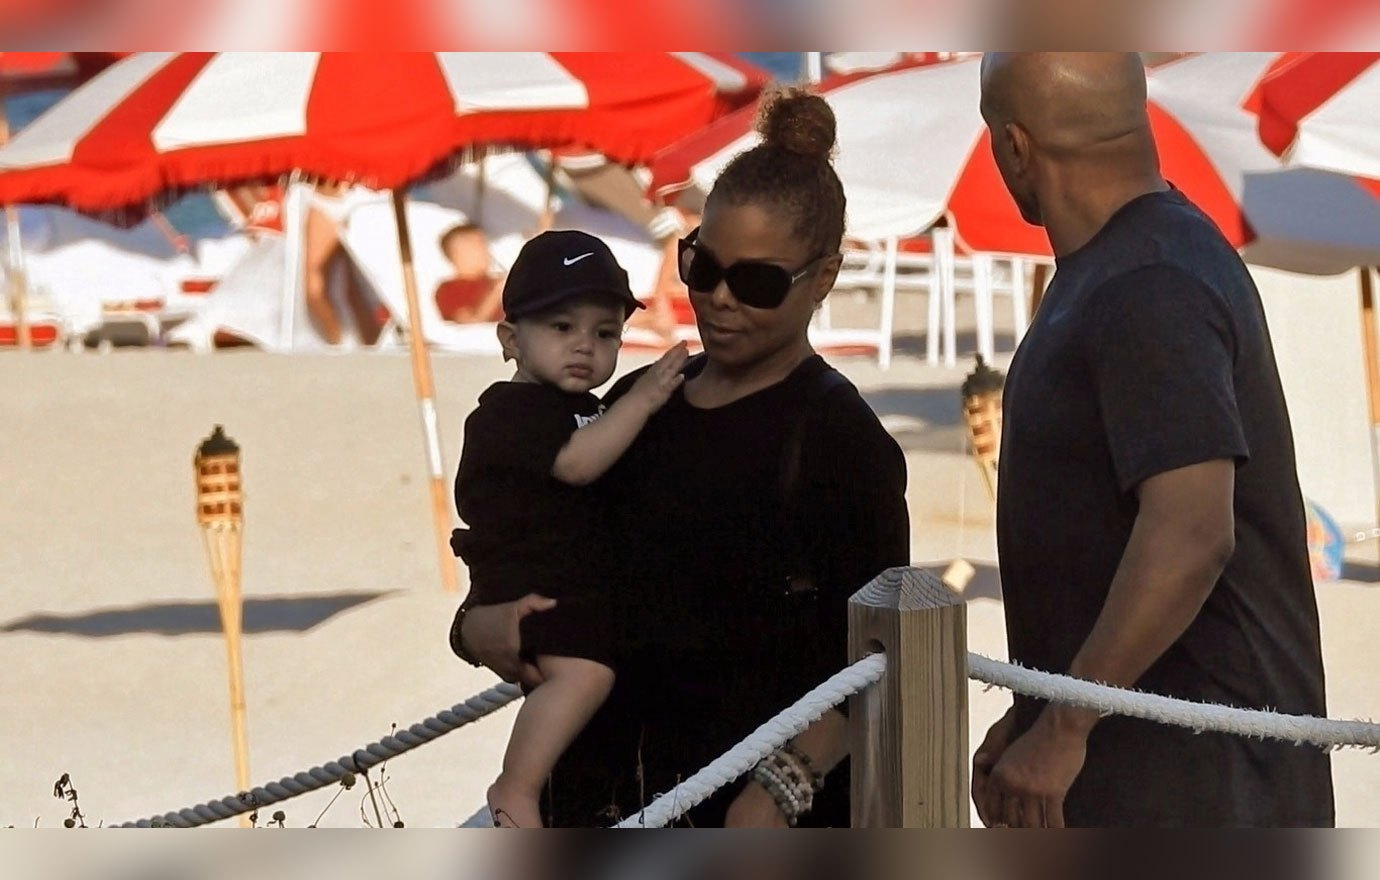 Janet jackson pictures beach